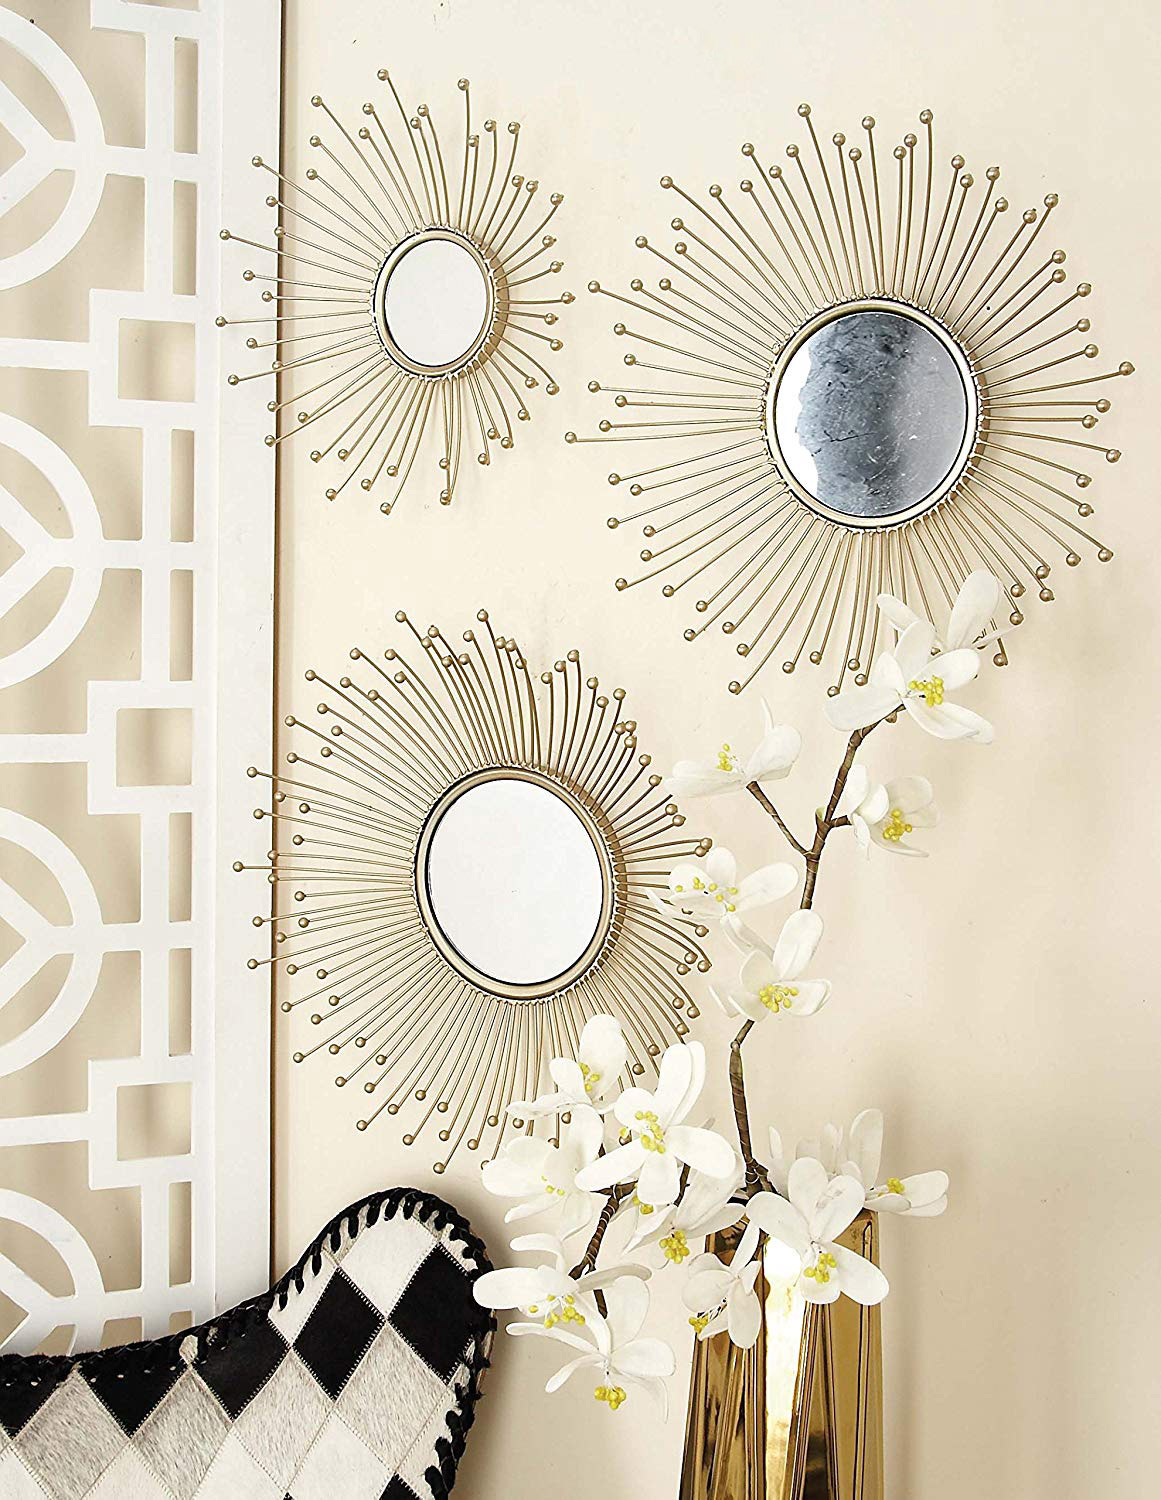 Sunburst-Style-Set-Of-3-Decorative-Wall-Mirrors-Mid-Century-Modern-Wall-Decor